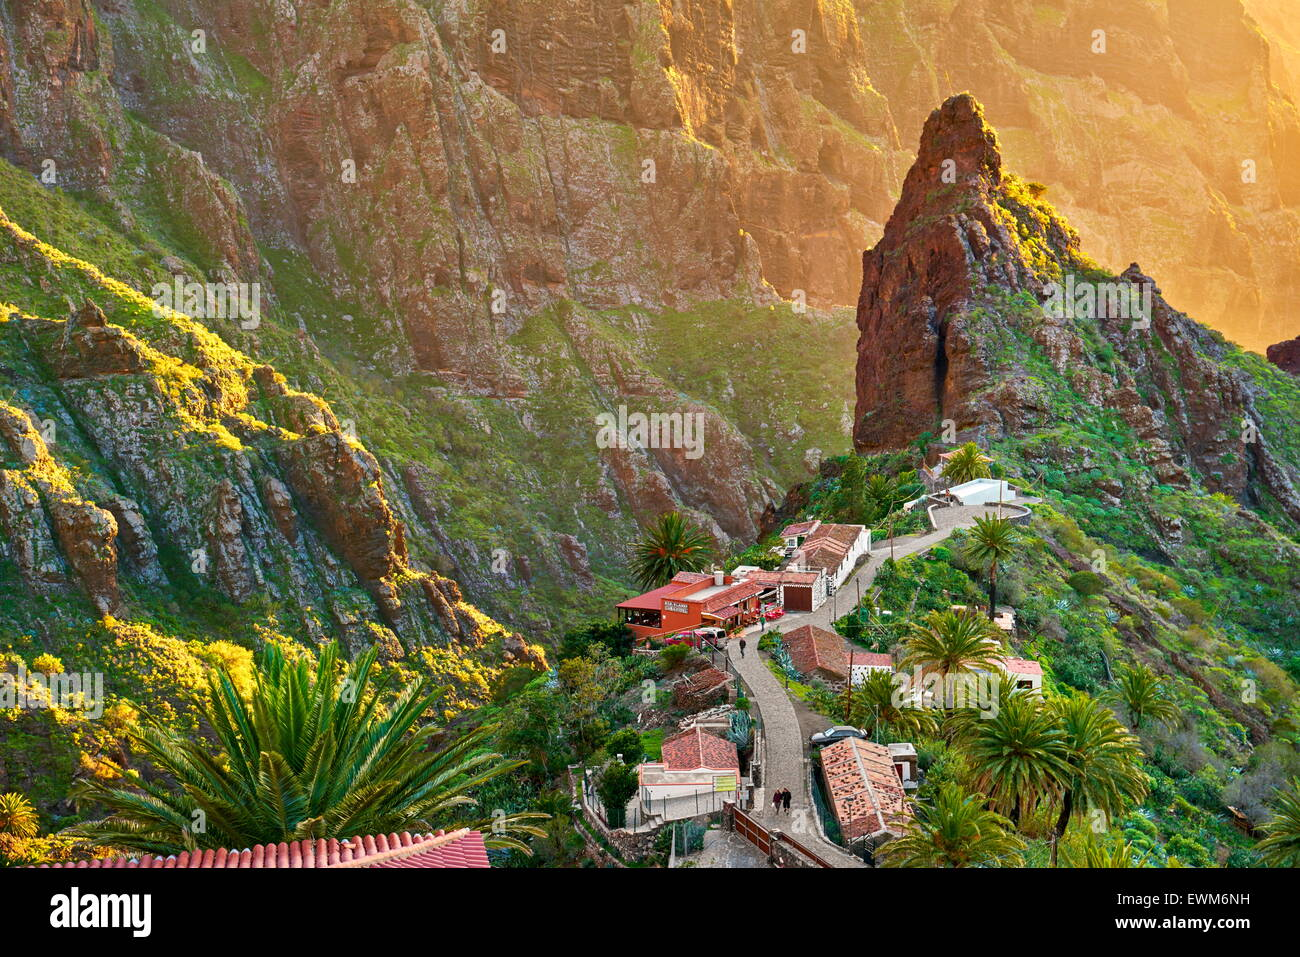 Village de Masca, Tenerife, Canaries, Espagne Photo Stock